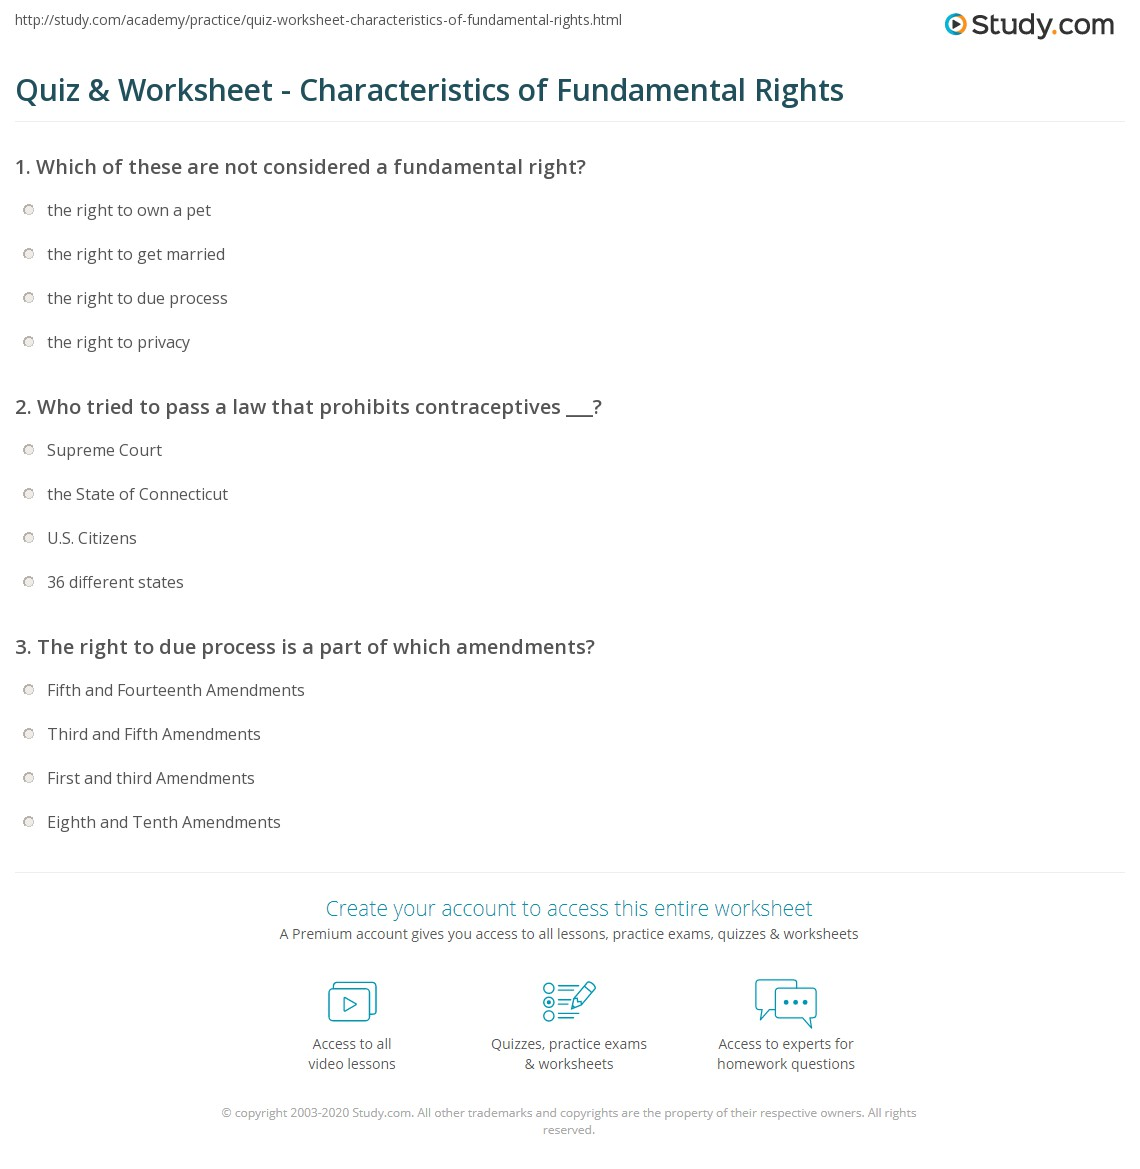 Aldiablosus  Ravishing Quiz Amp Worksheet  Characteristics Of Fundamental Rights  Studycom With Fascinating Print What Are Fundamental Rights  Definition Types Amp Features Worksheet With Adorable Conversions Worksheets Also Make Your Own Math Worksheet In Addition Resentments Worksheet And Excel Worksheet Limit As Well As Rd Grade Math Free Worksheets Additionally Smarter Goals Worksheet From Studycom With Aldiablosus  Fascinating Quiz Amp Worksheet  Characteristics Of Fundamental Rights  Studycom With Adorable Print What Are Fundamental Rights  Definition Types Amp Features Worksheet And Ravishing Conversions Worksheets Also Make Your Own Math Worksheet In Addition Resentments Worksheet From Studycom